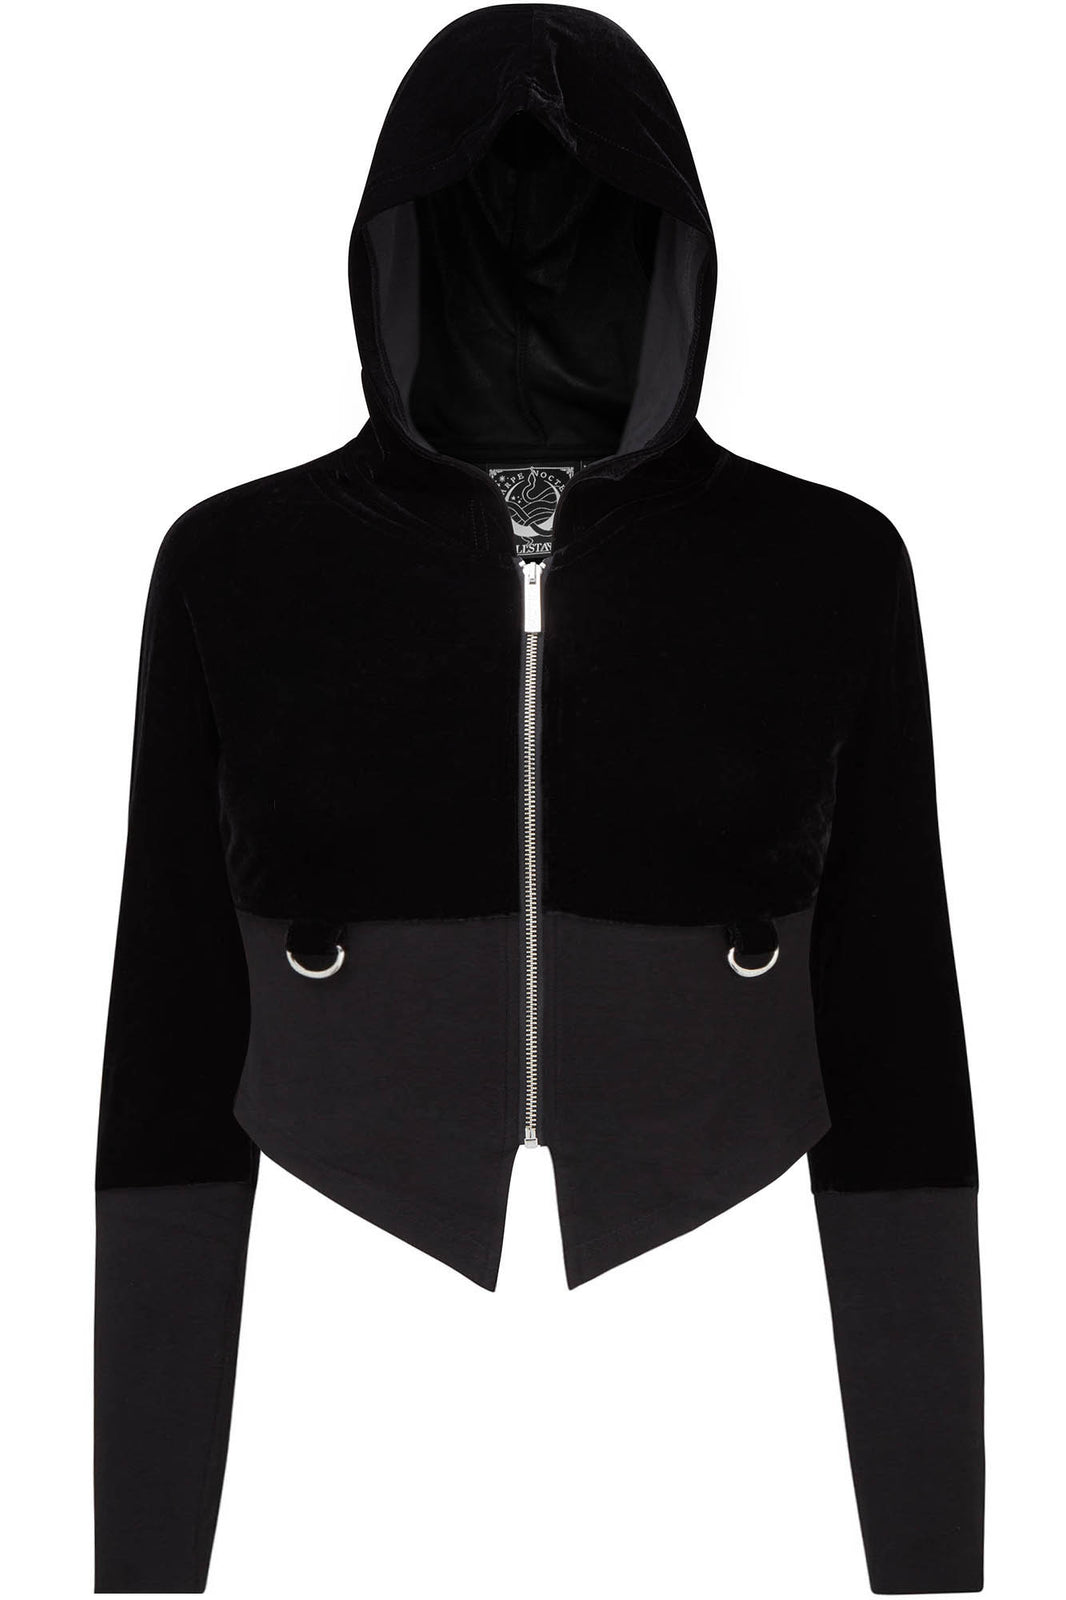 Shadow Shift Hooded Top [PLUS]